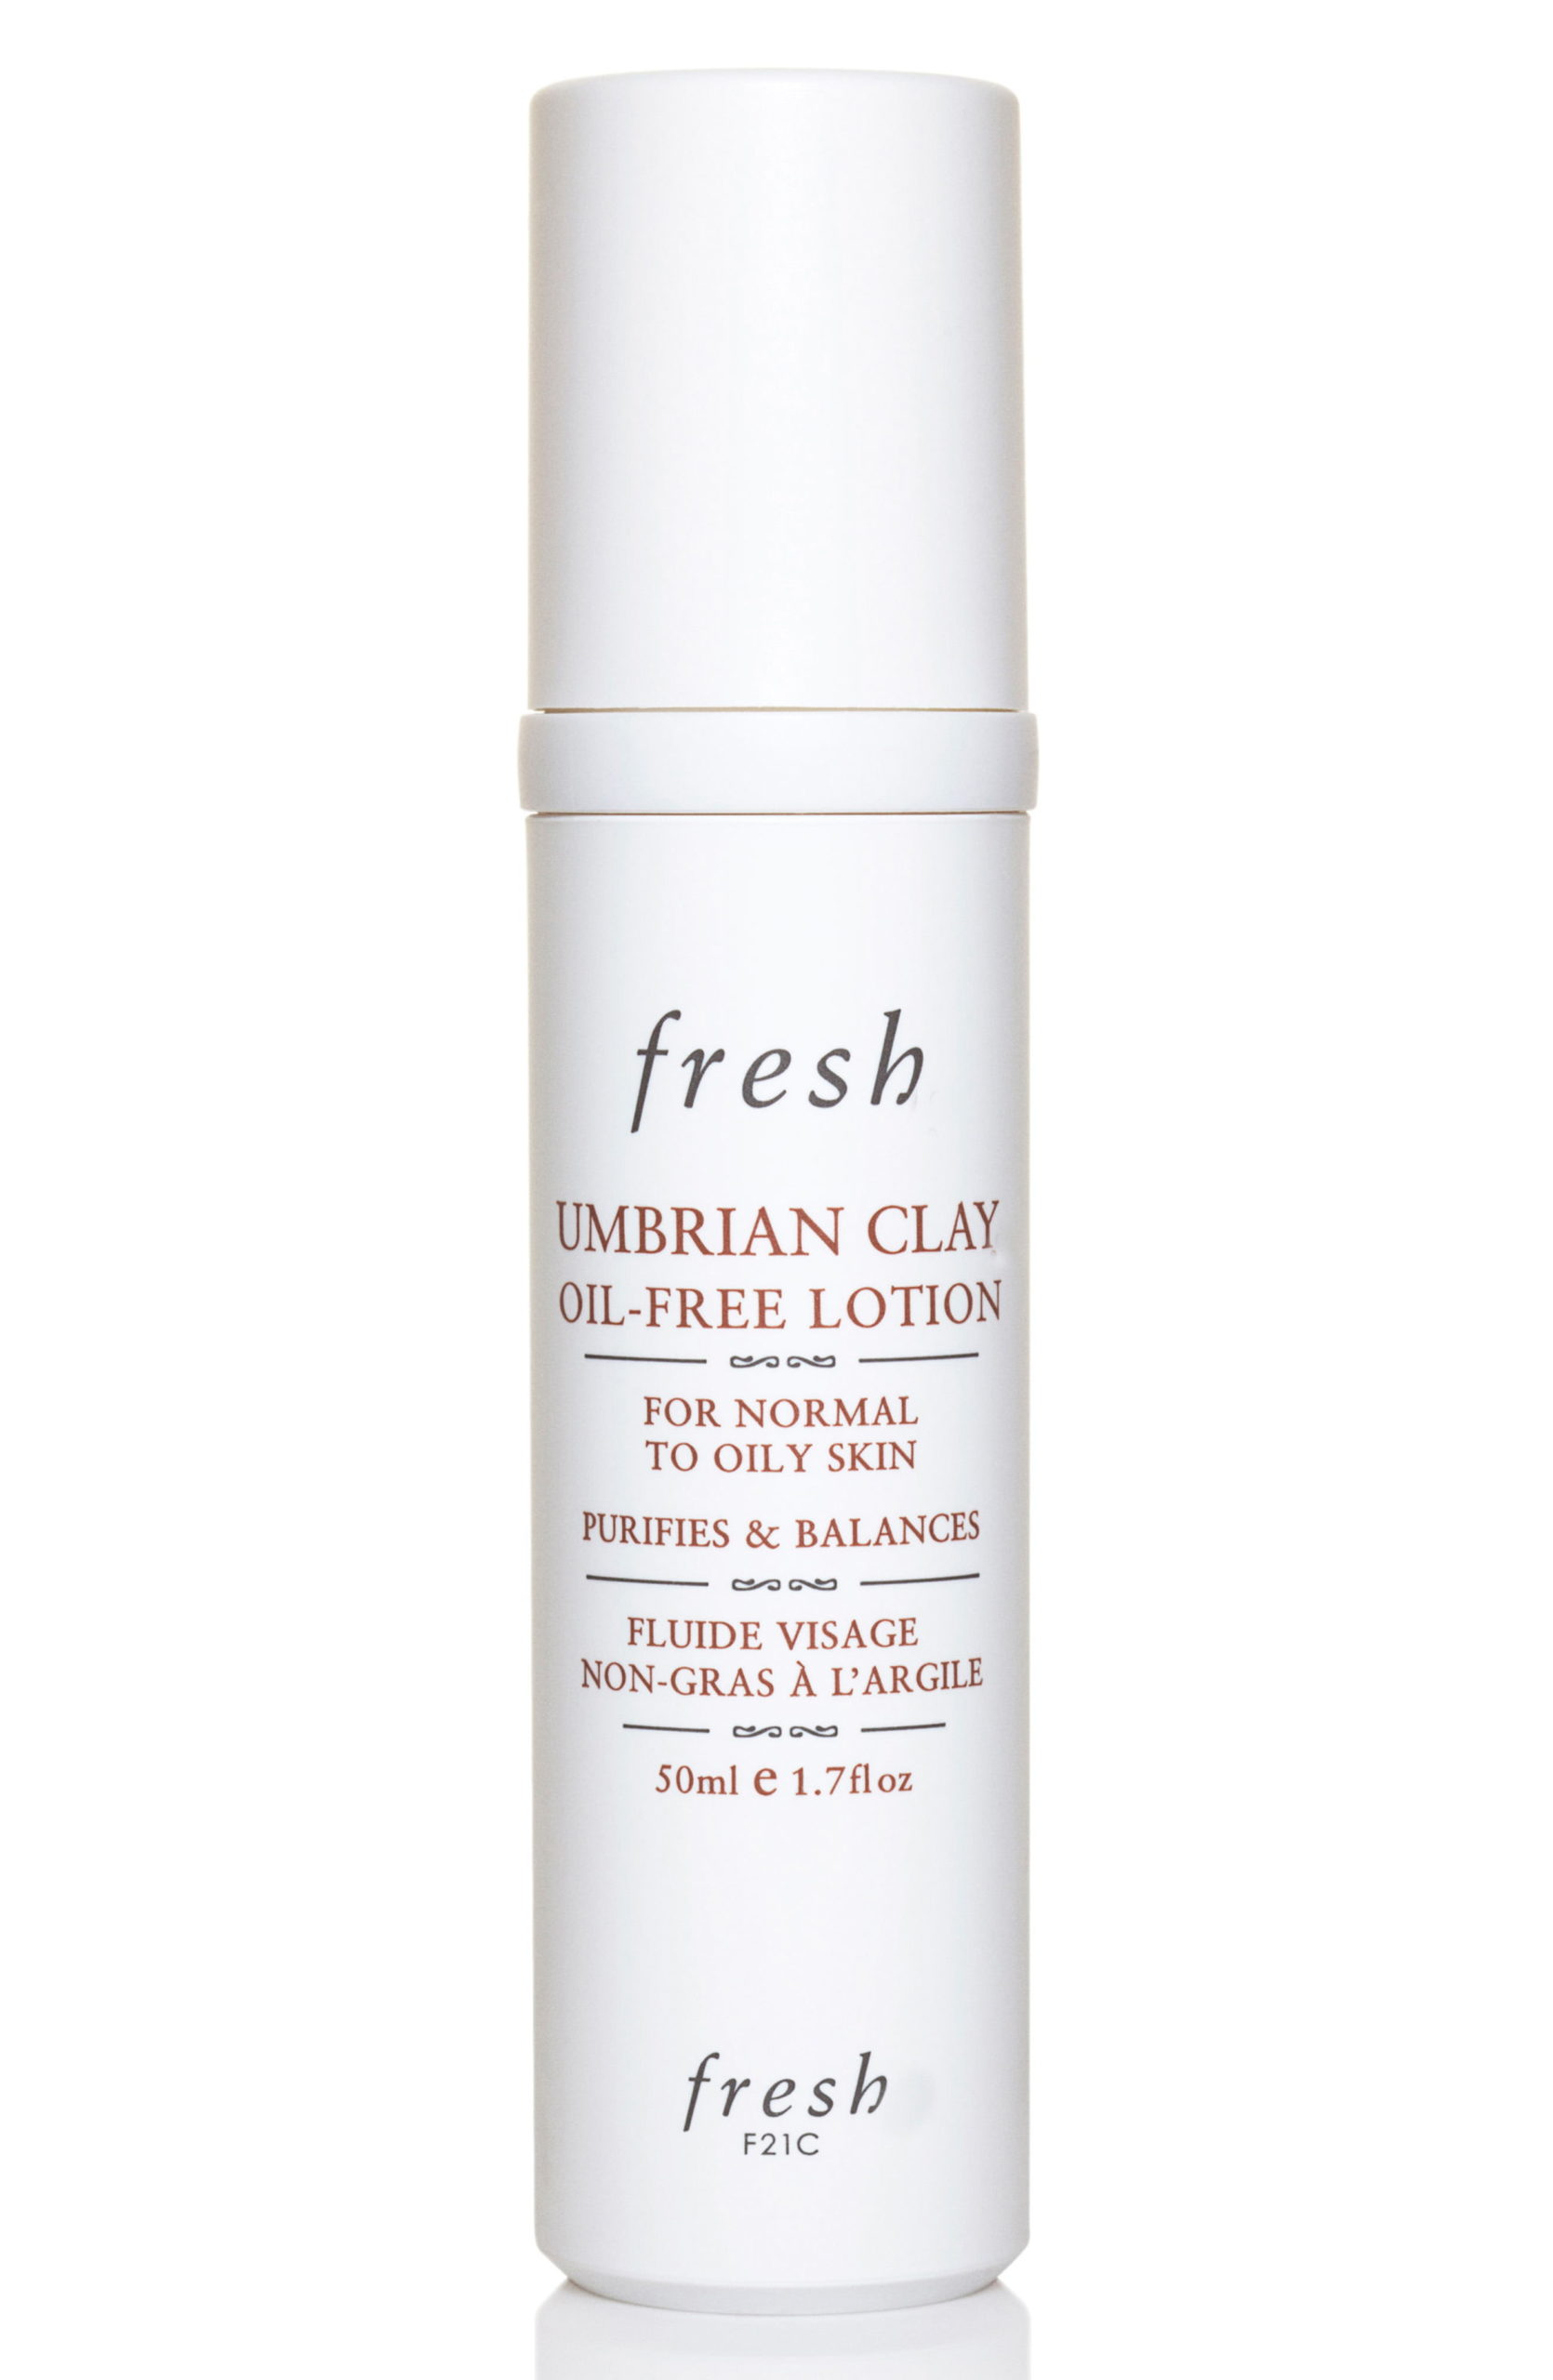 Umbrian Clay Oil-free Face Lotion